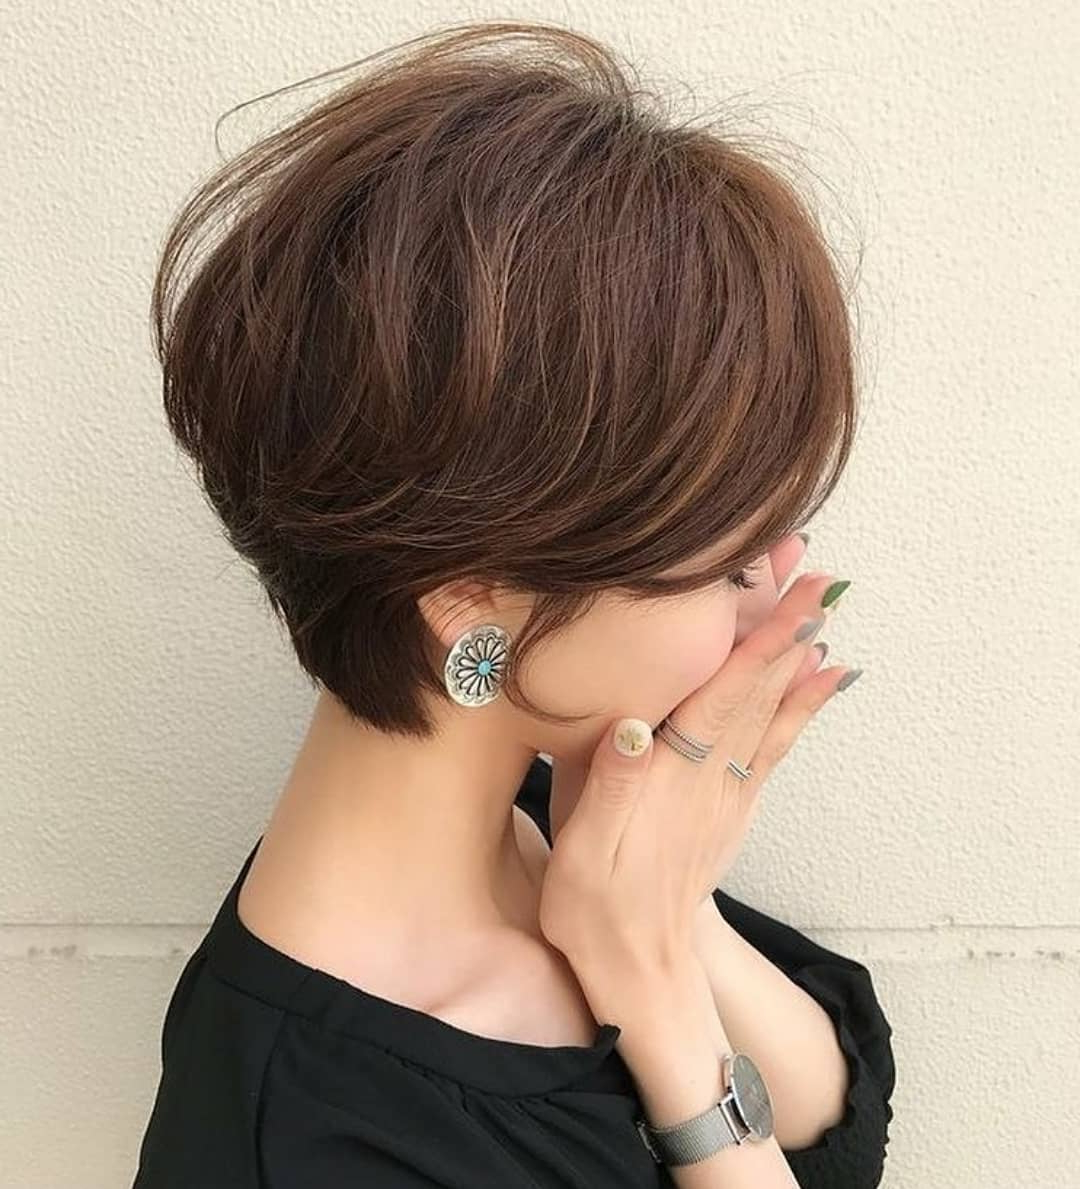 Cute Short Hairstyles And Haircuts For Young Girl – Popular Haircuts In Young Girl Short Hairstyles (View 8 of 25)